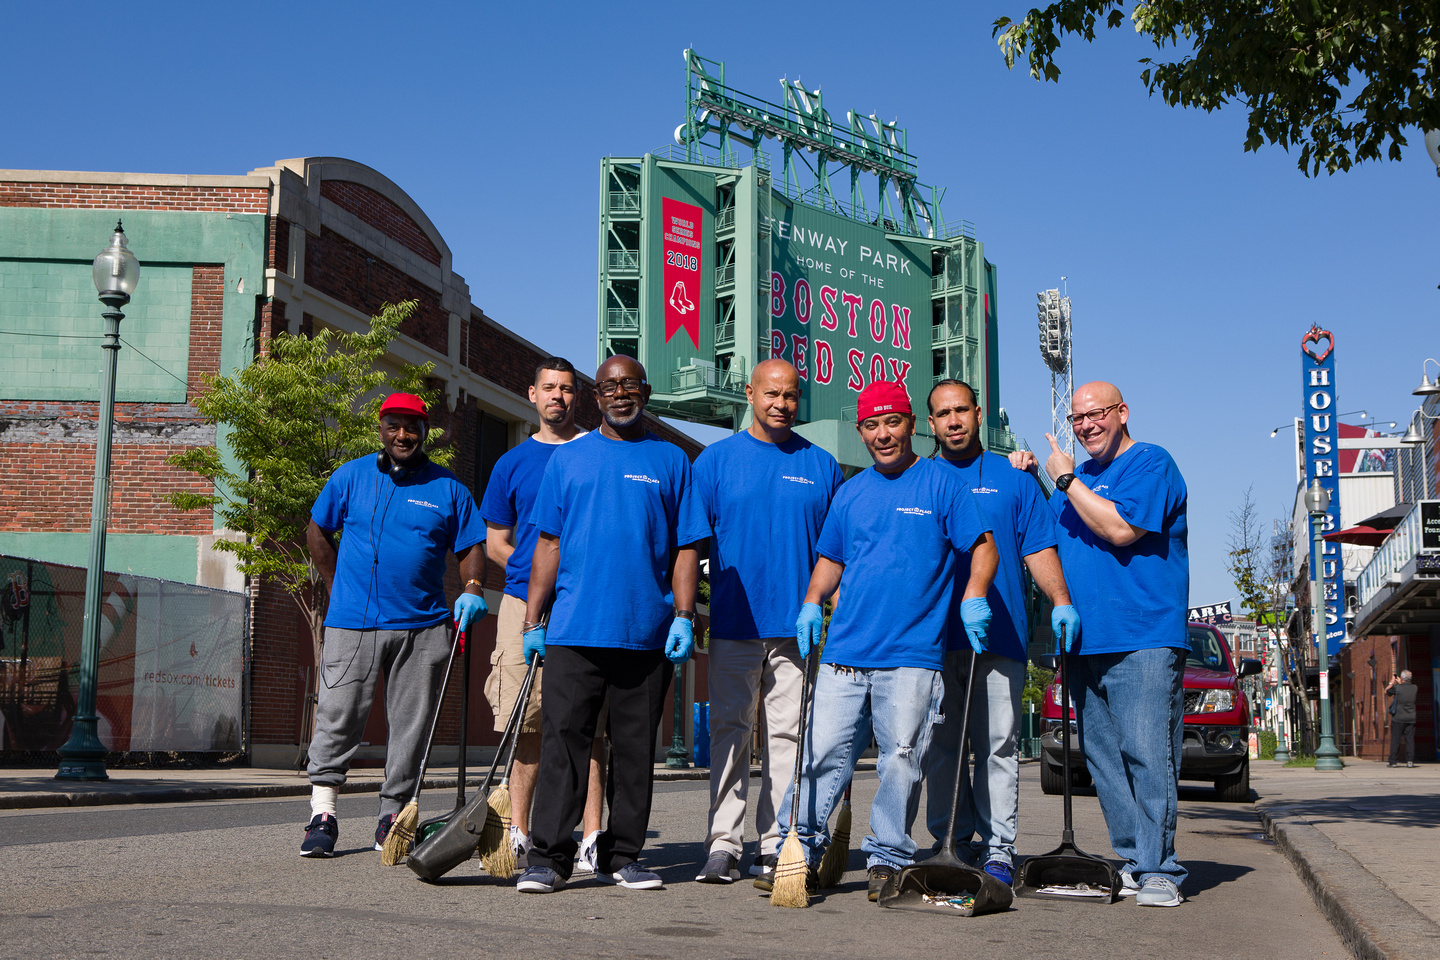 the clean corners bright hopes team standing in front of the fenway park sign